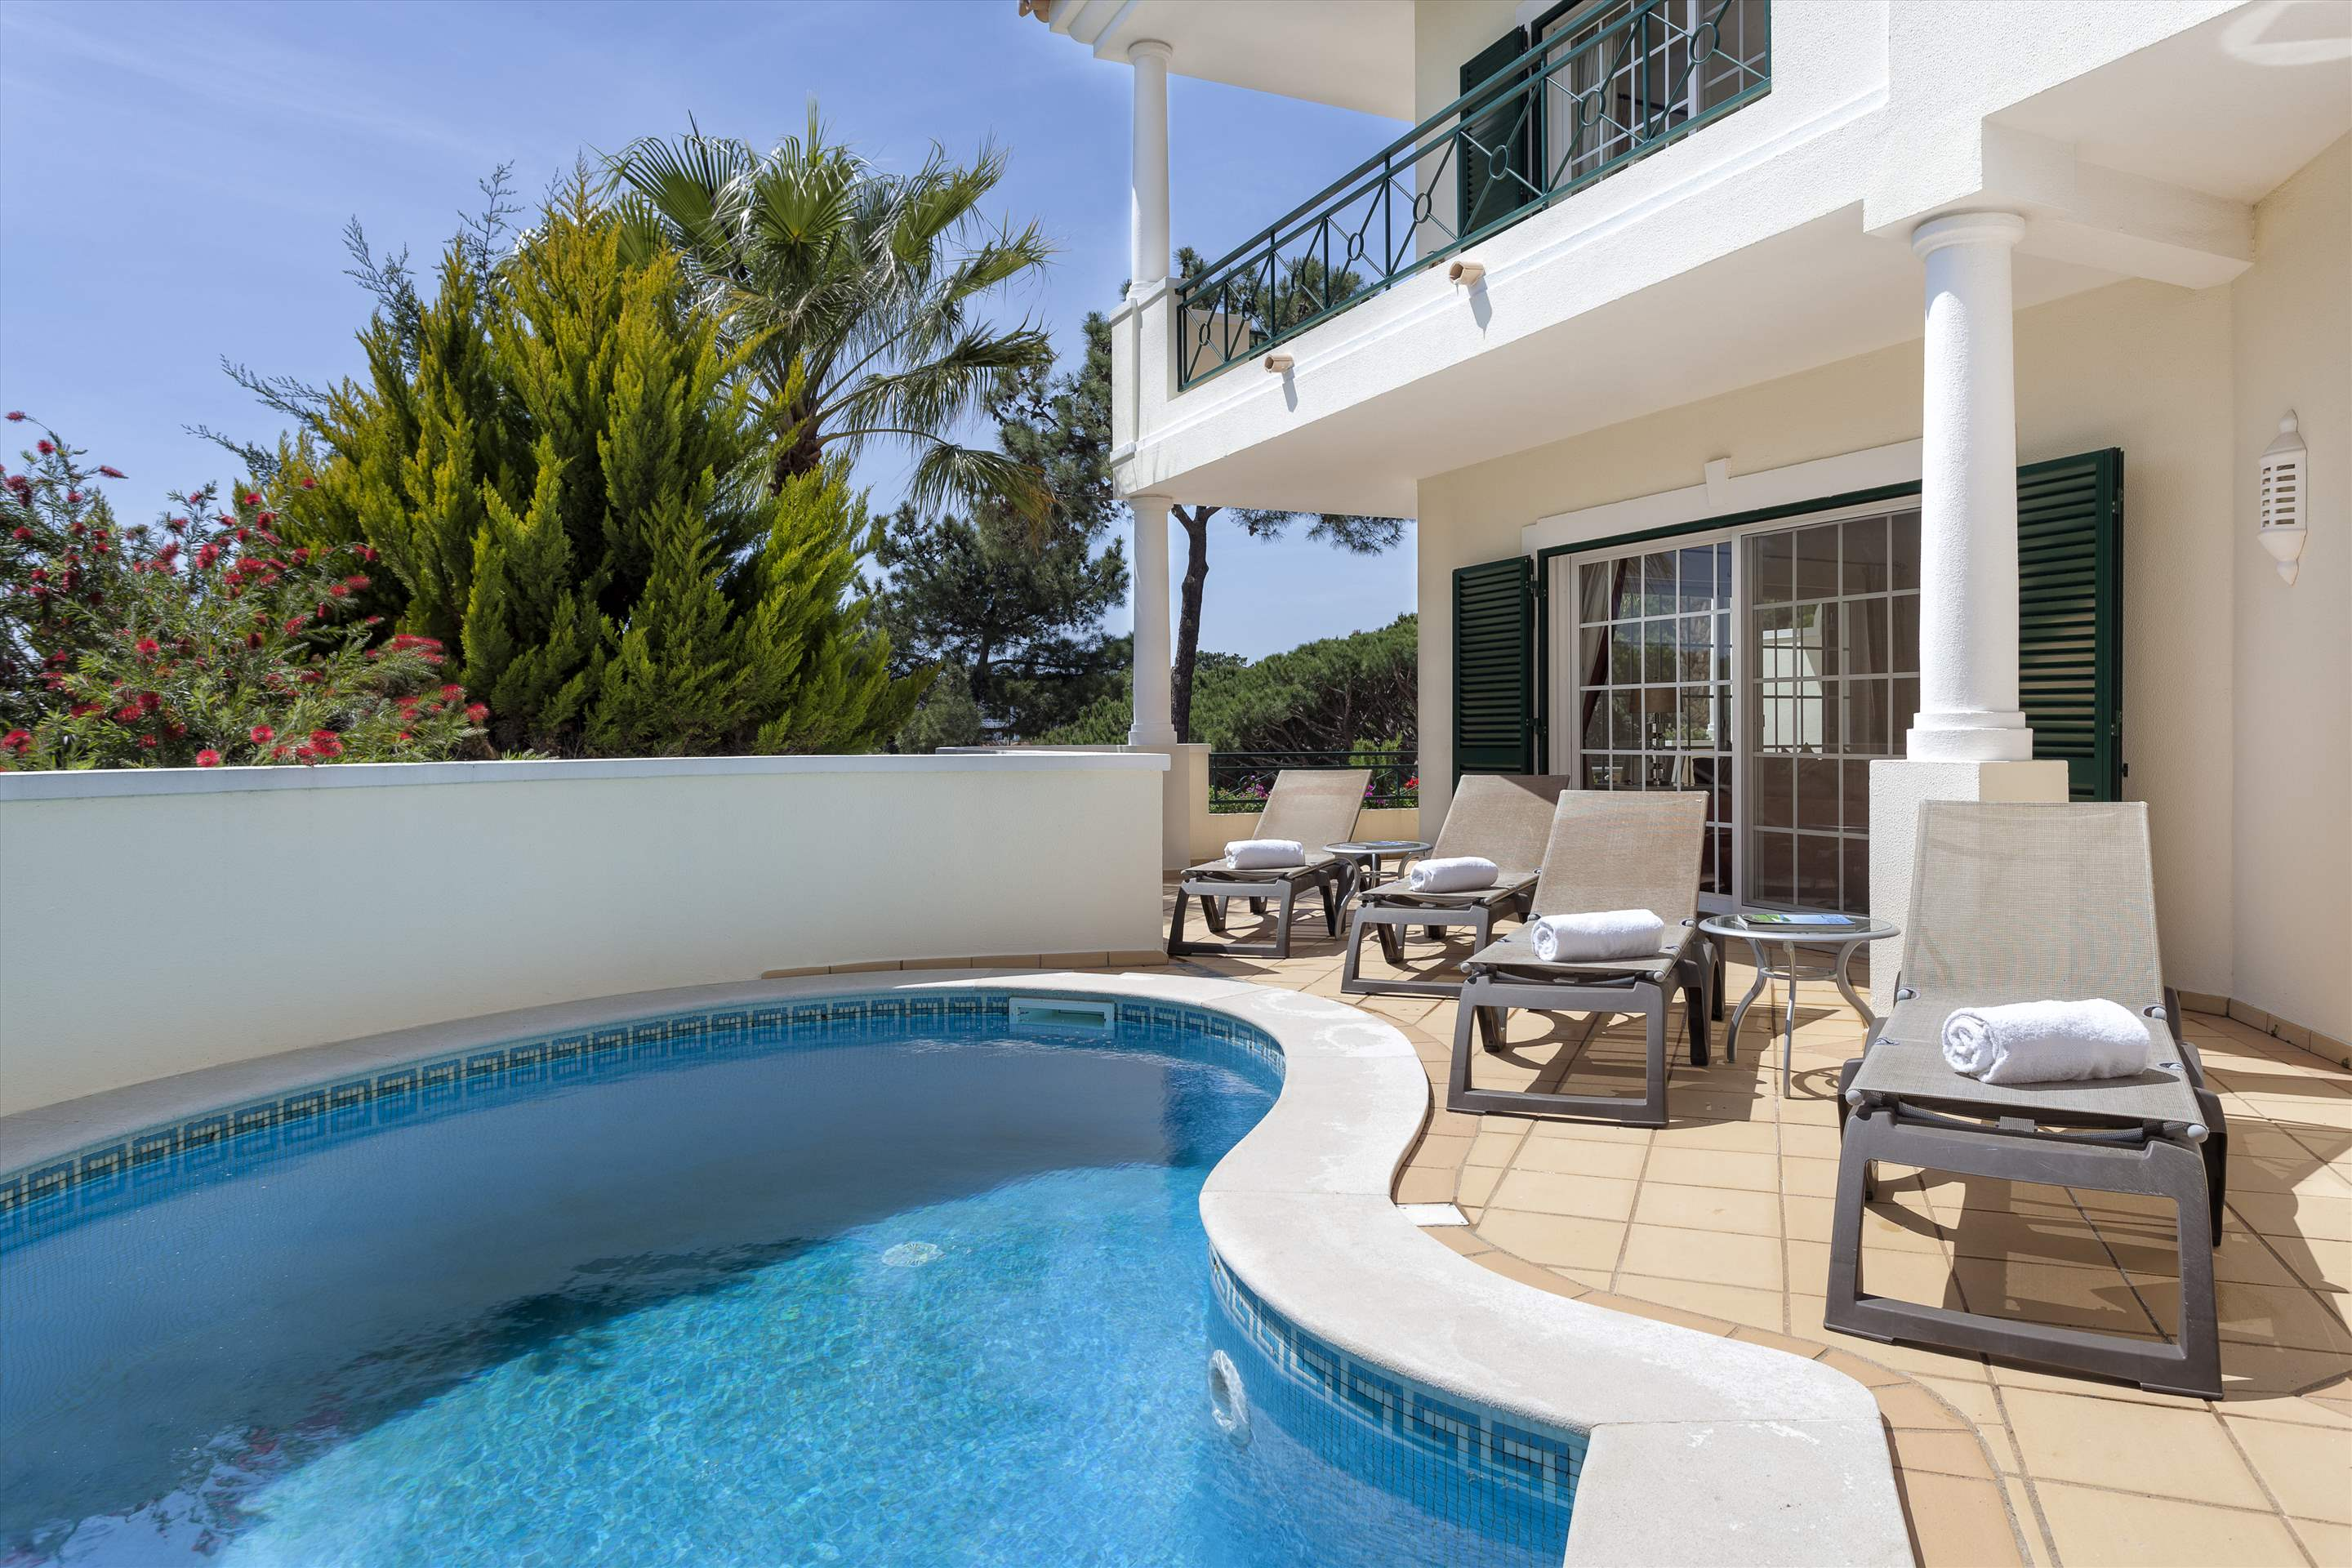 Apartment Romaine, 3 bedroom apartment in Vale do Lobo, Algarve Photo #1